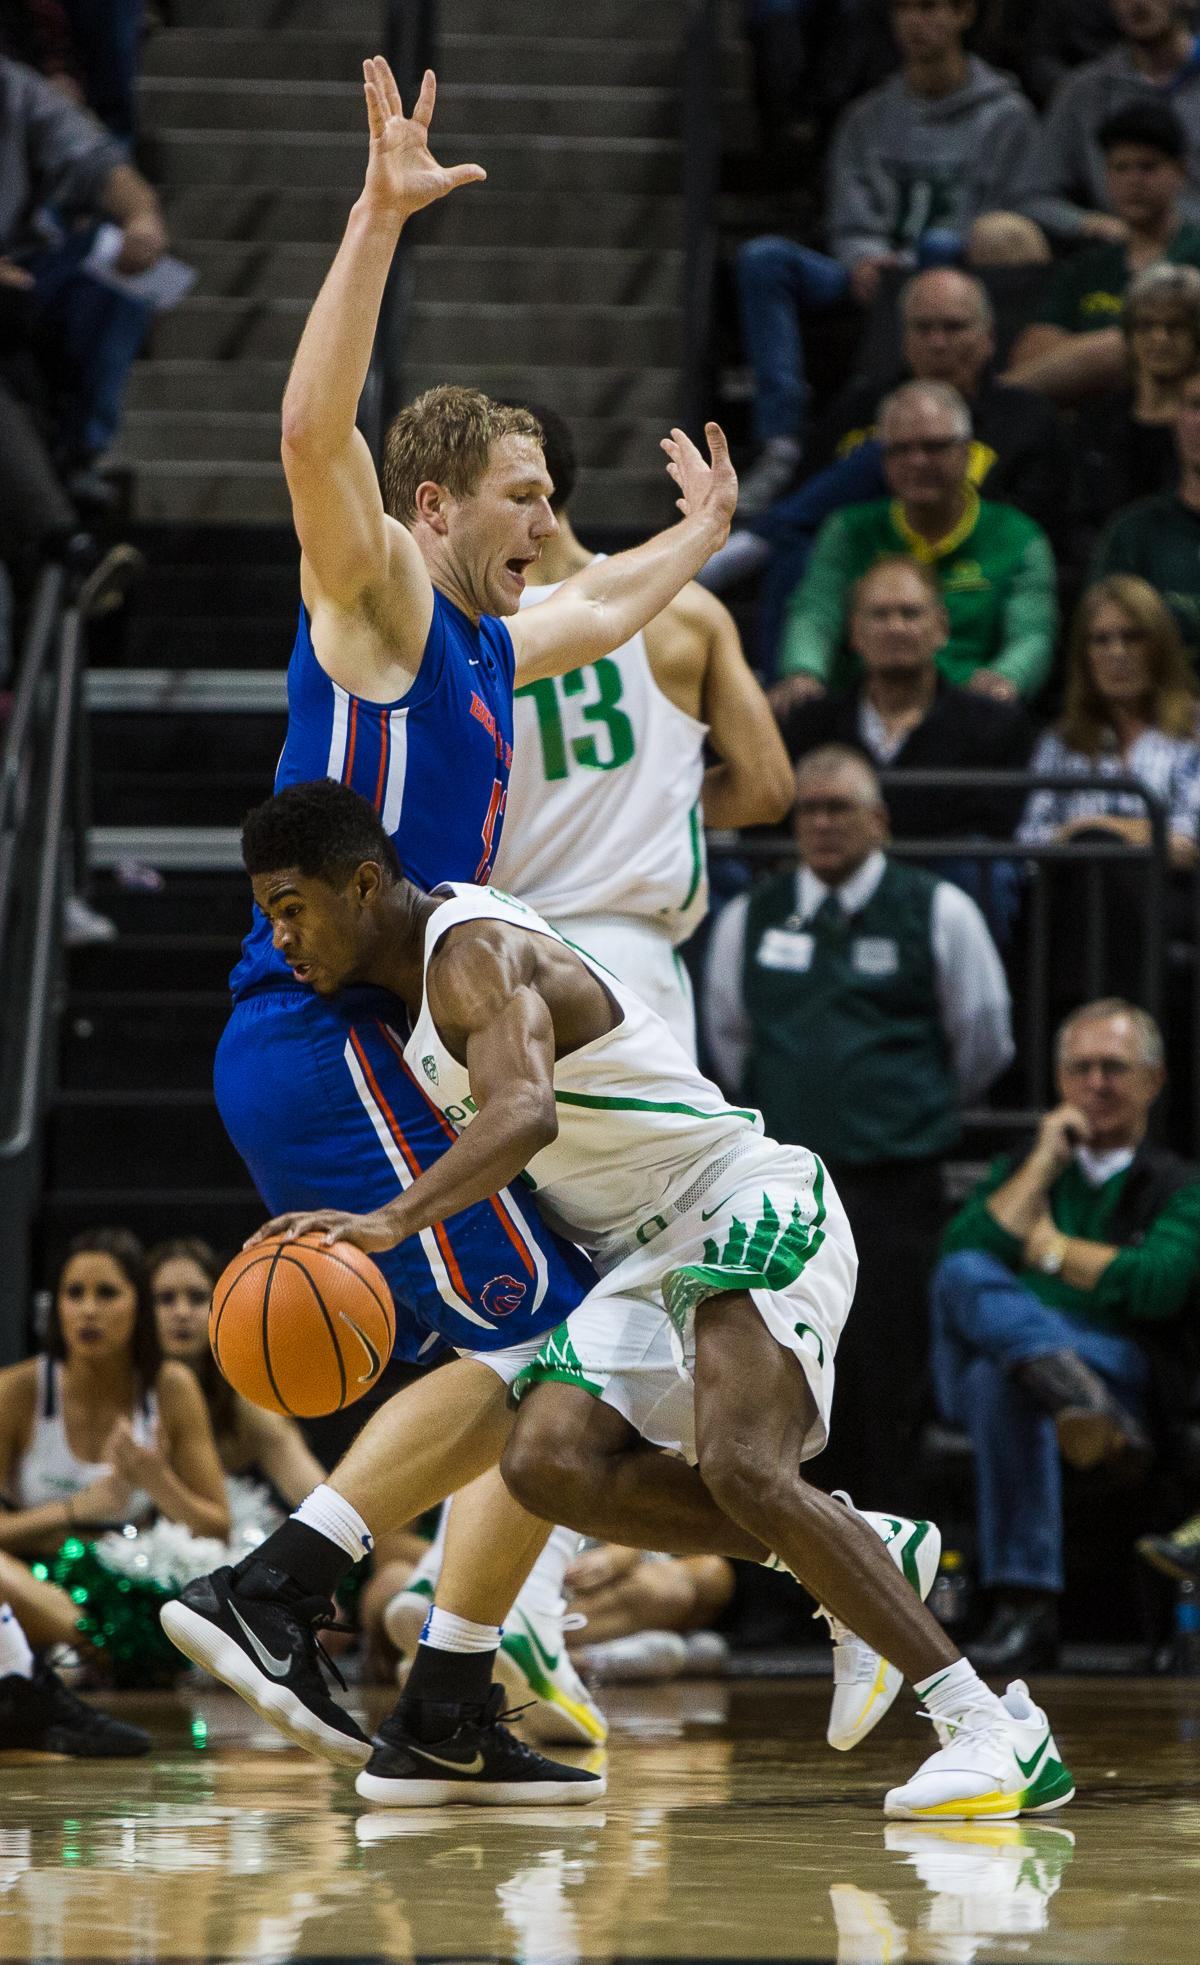 University of Oregon Duck Victor Bailey Jr. (#10) tries to break past Boise State Bronco Chris Sengfelder (#43). The Boise State Broncos defeated the University of Oregon Ducks 73 – 70 at Matthew Knight Arena in Eugene, Ore., on December 1, 2017. Photo by Kit MacAvoy, Oregon News Lab